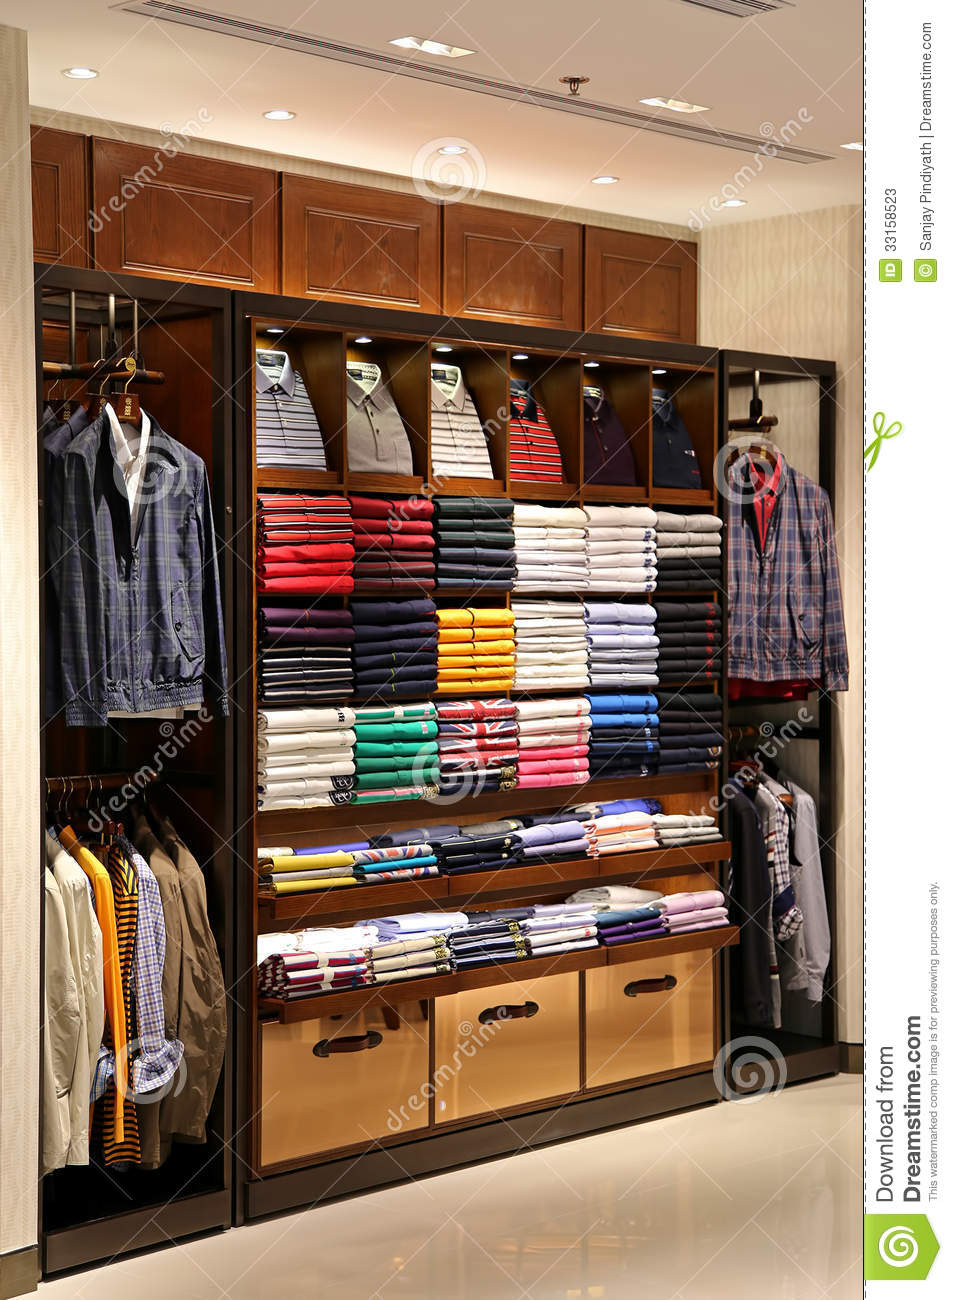 Clothes stores Best guy clothing stores